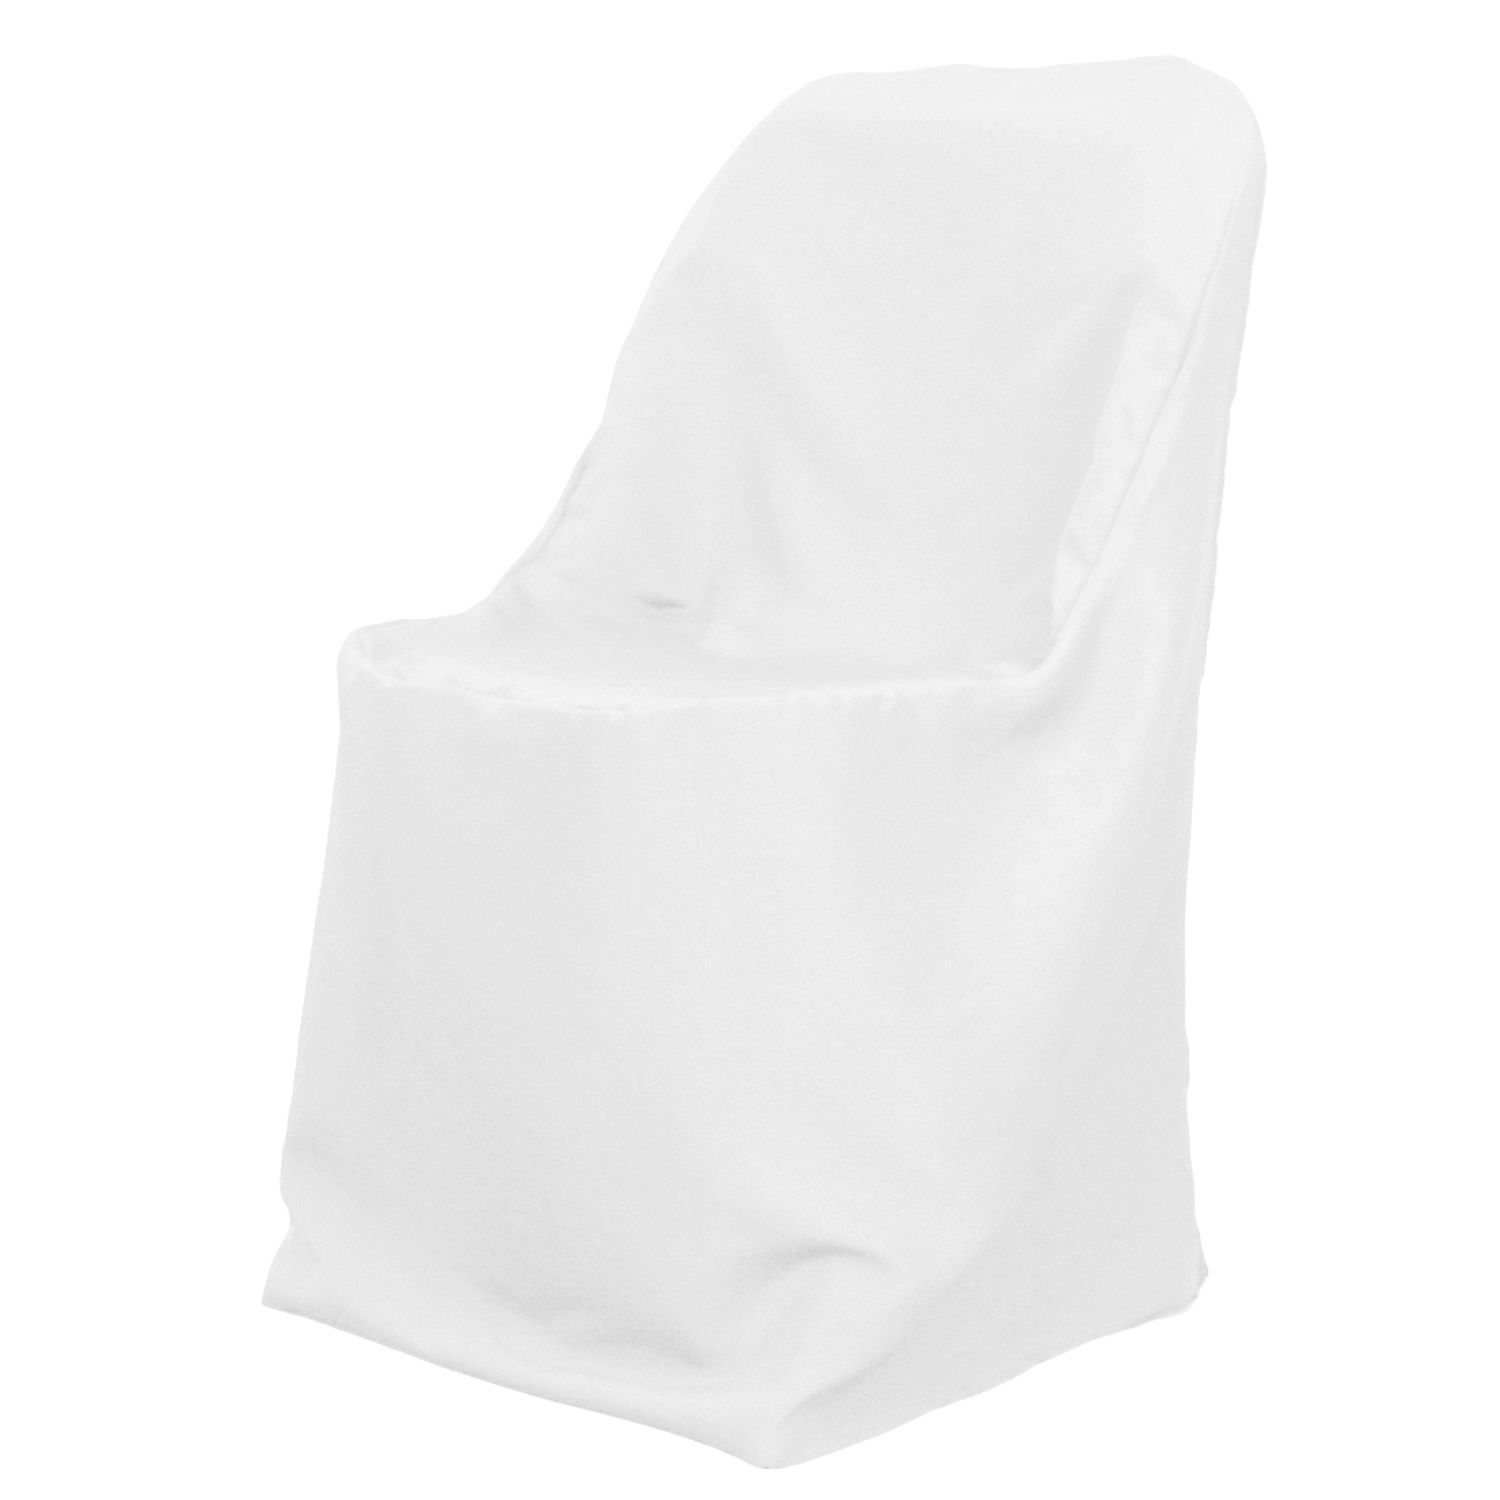 chair covers for folding chairs wedding steel three seater dress up the drab with polyester a white buy weddings and events poly cover transforms ordinary into stylish decor